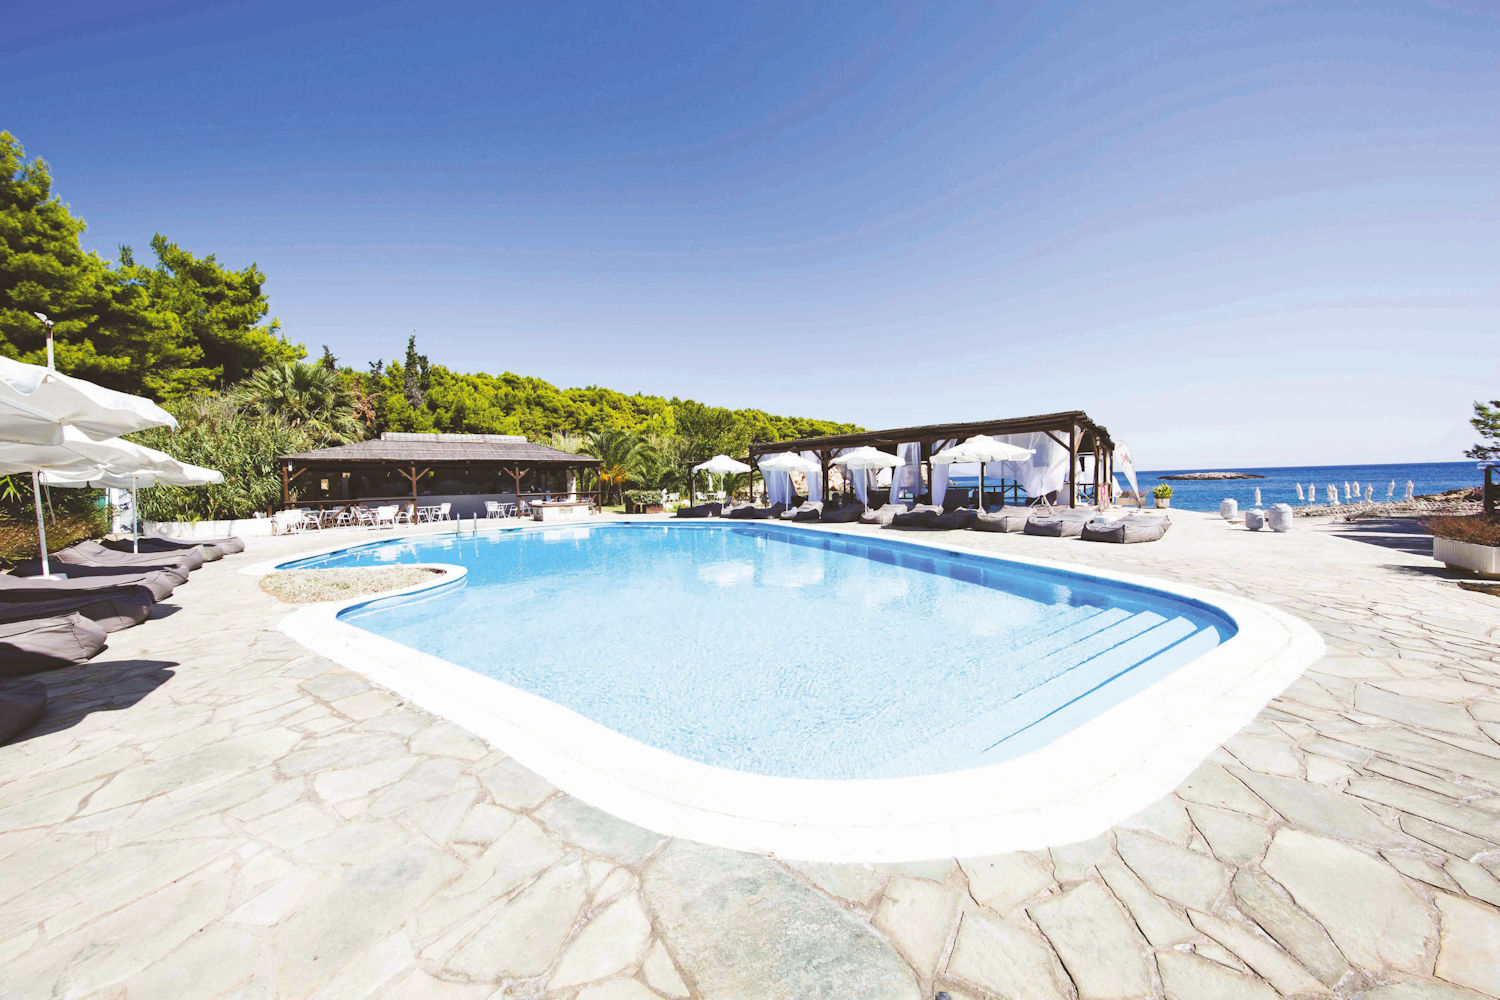 marpunta village, hotels in alonissos